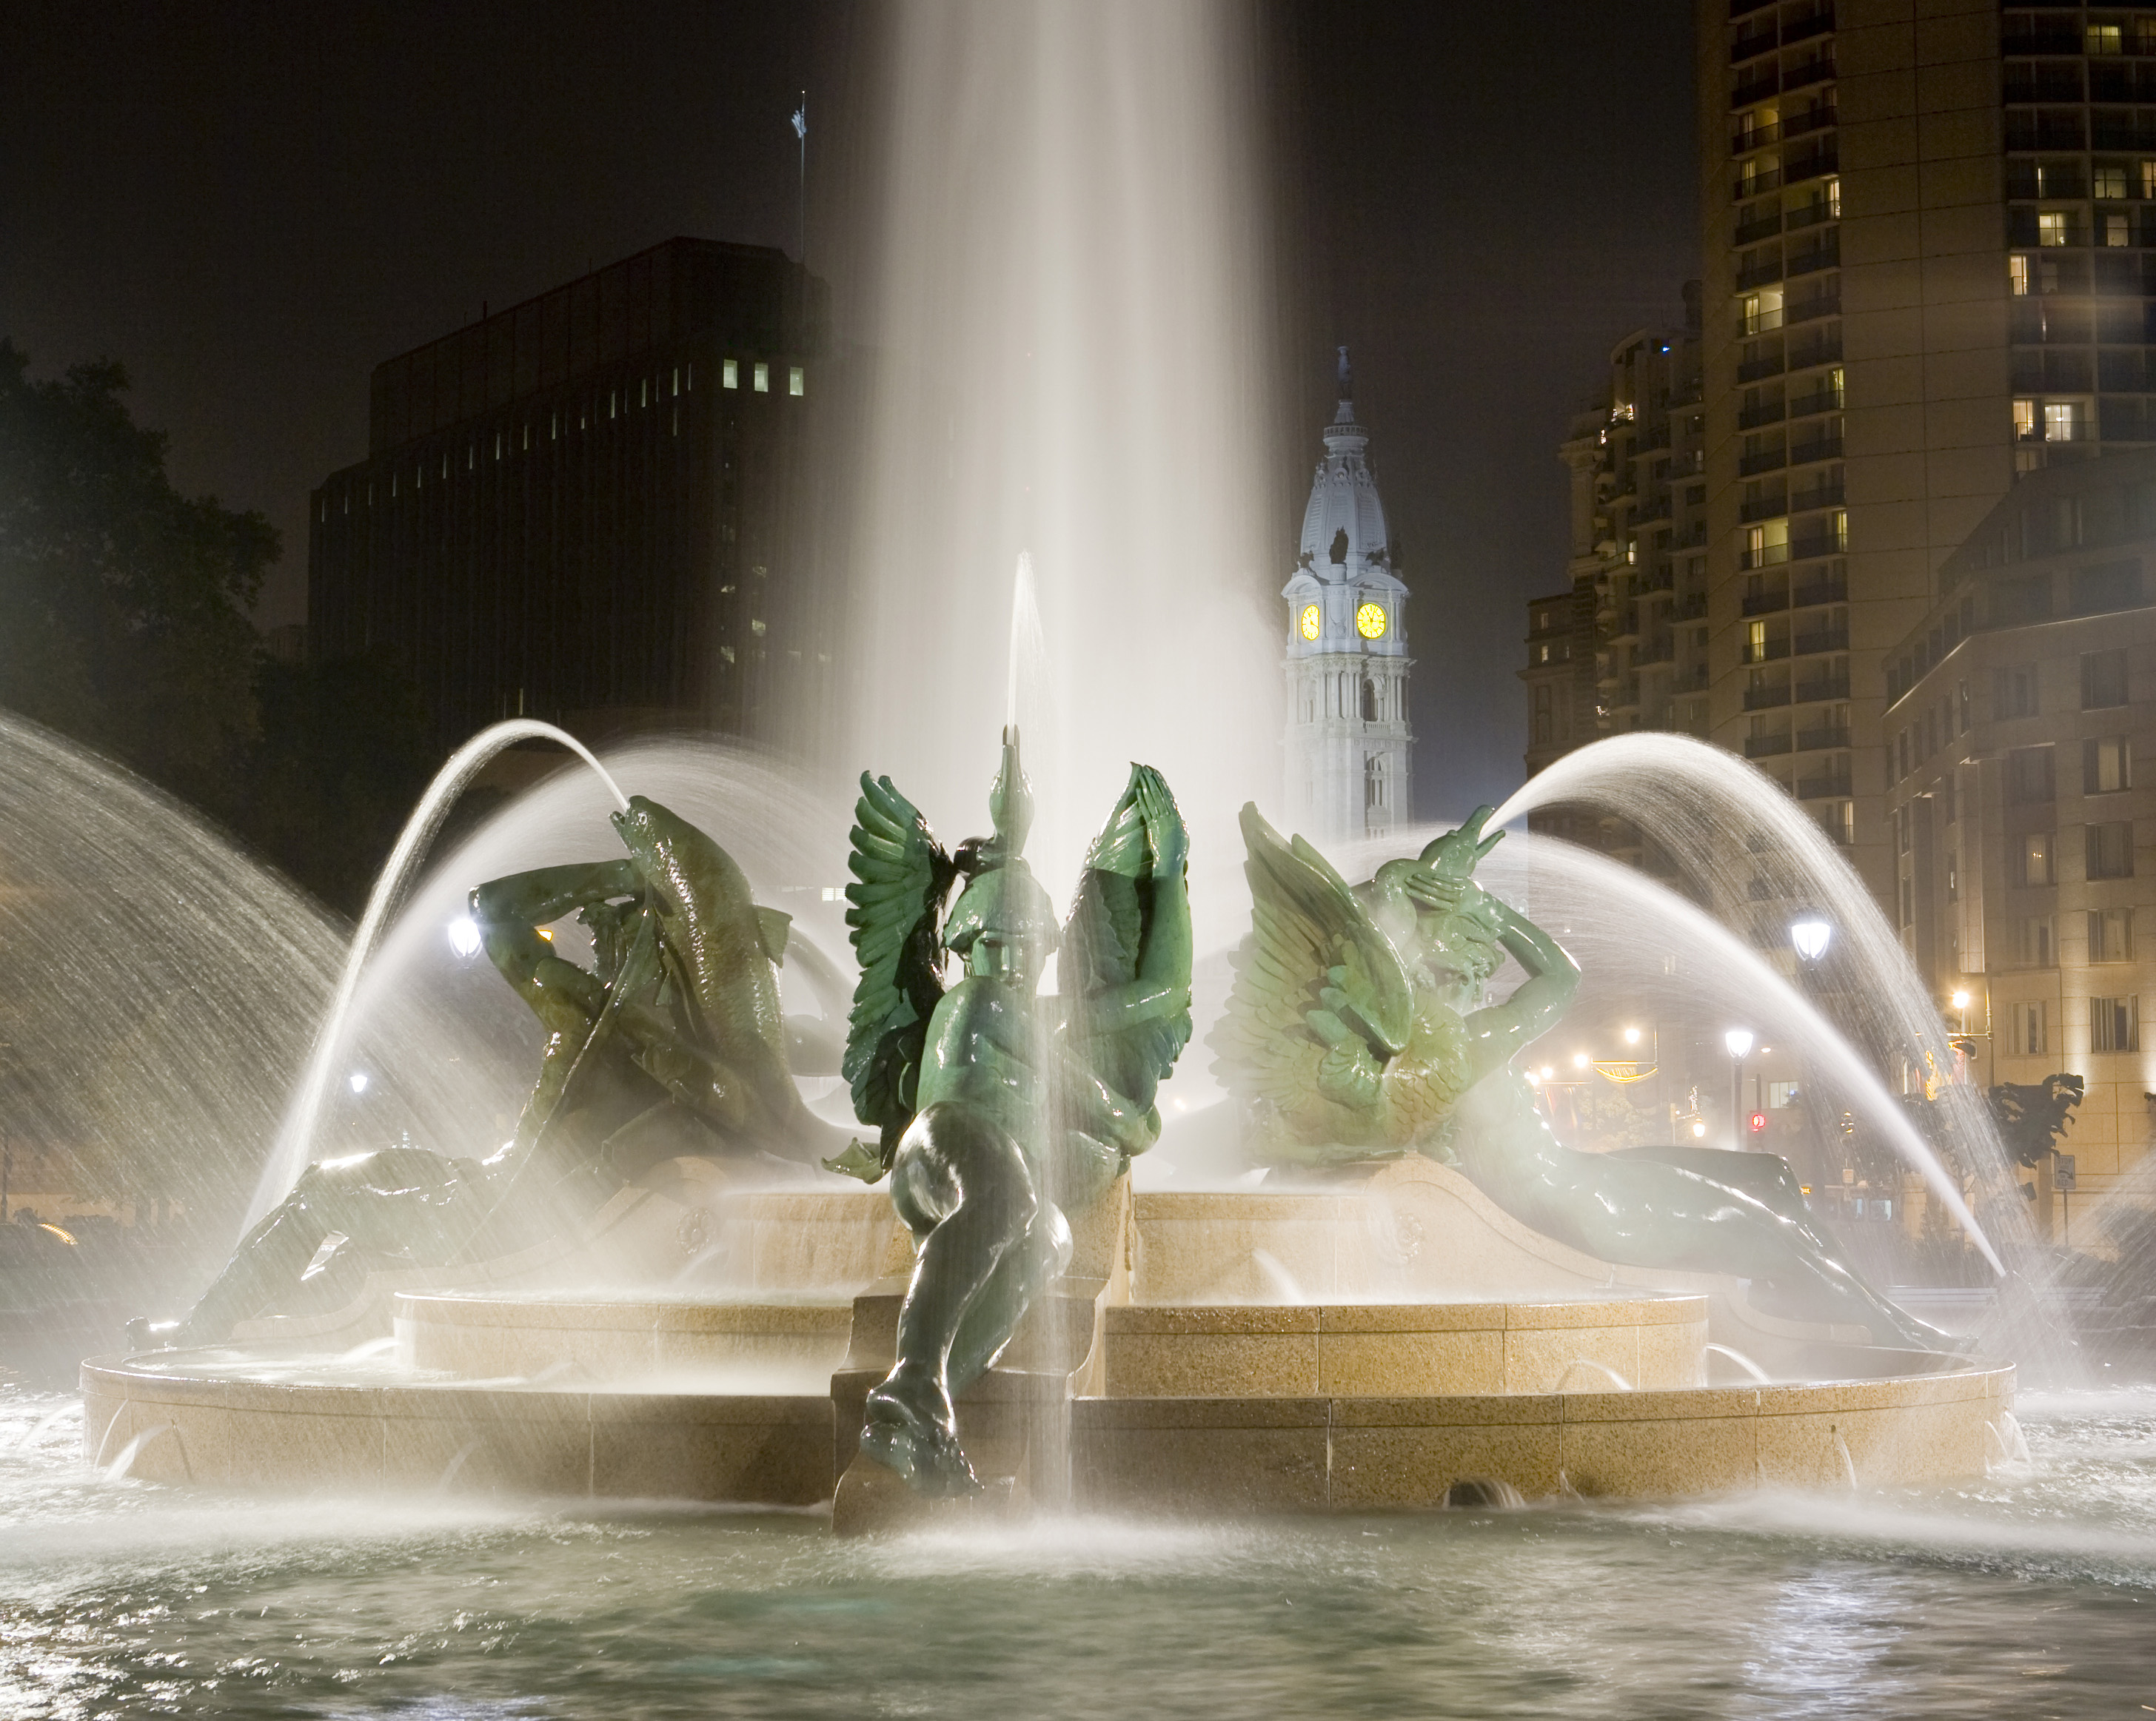 Alexander Stirling Calder's Swann Memorial Fountain and Alexander Milne Calder's William Penn